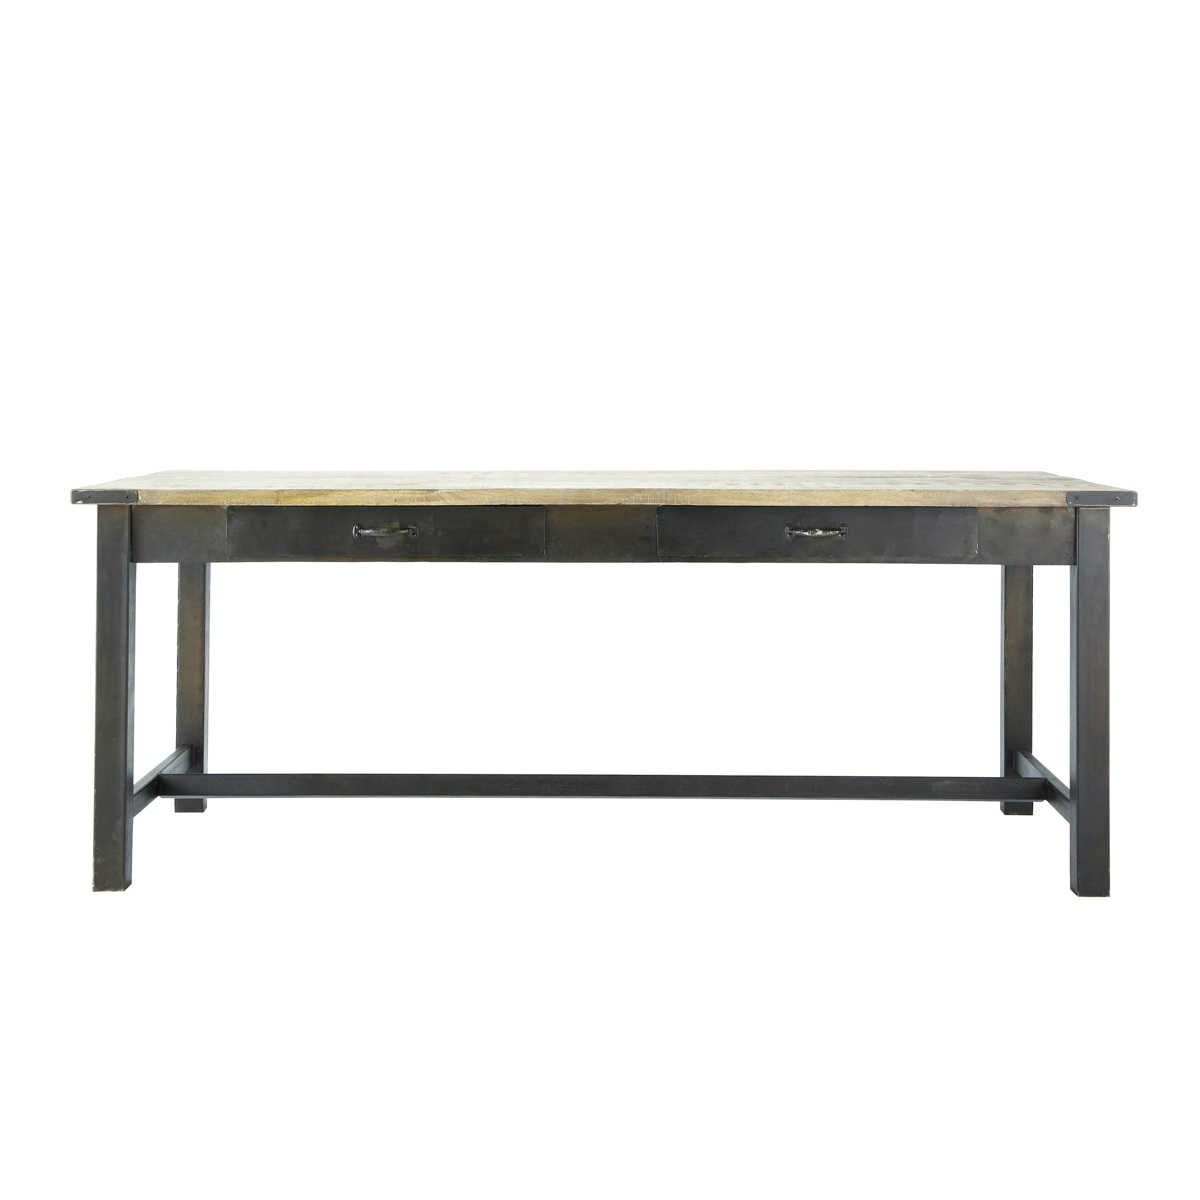 Table de salle manger en manguier et m tal l 200 cm - Table de sciage maison ...